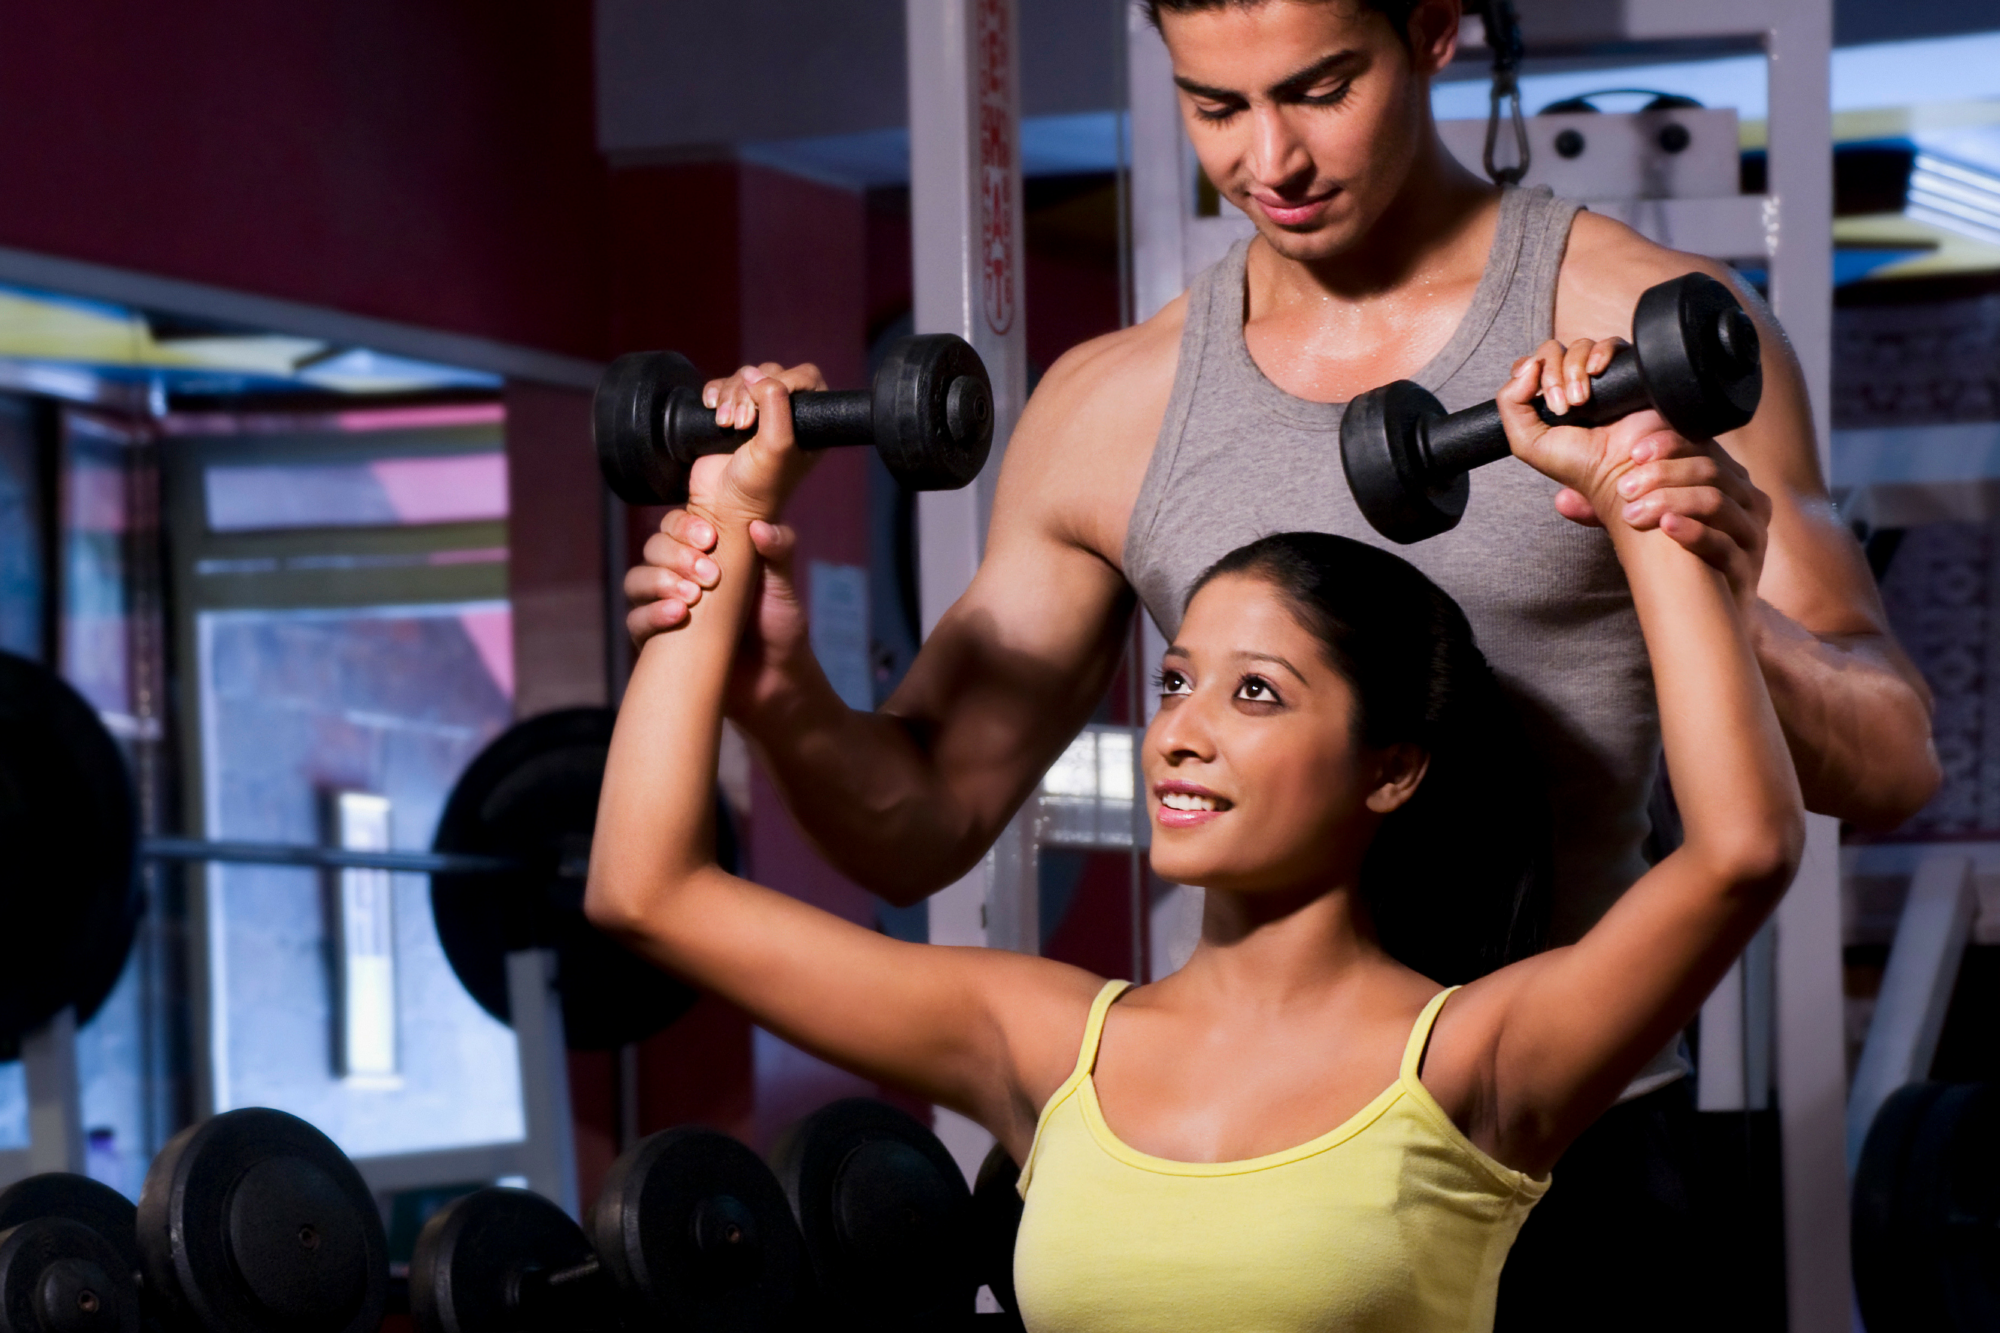 Know This Before Stepping A Foot Into A Fitness Club